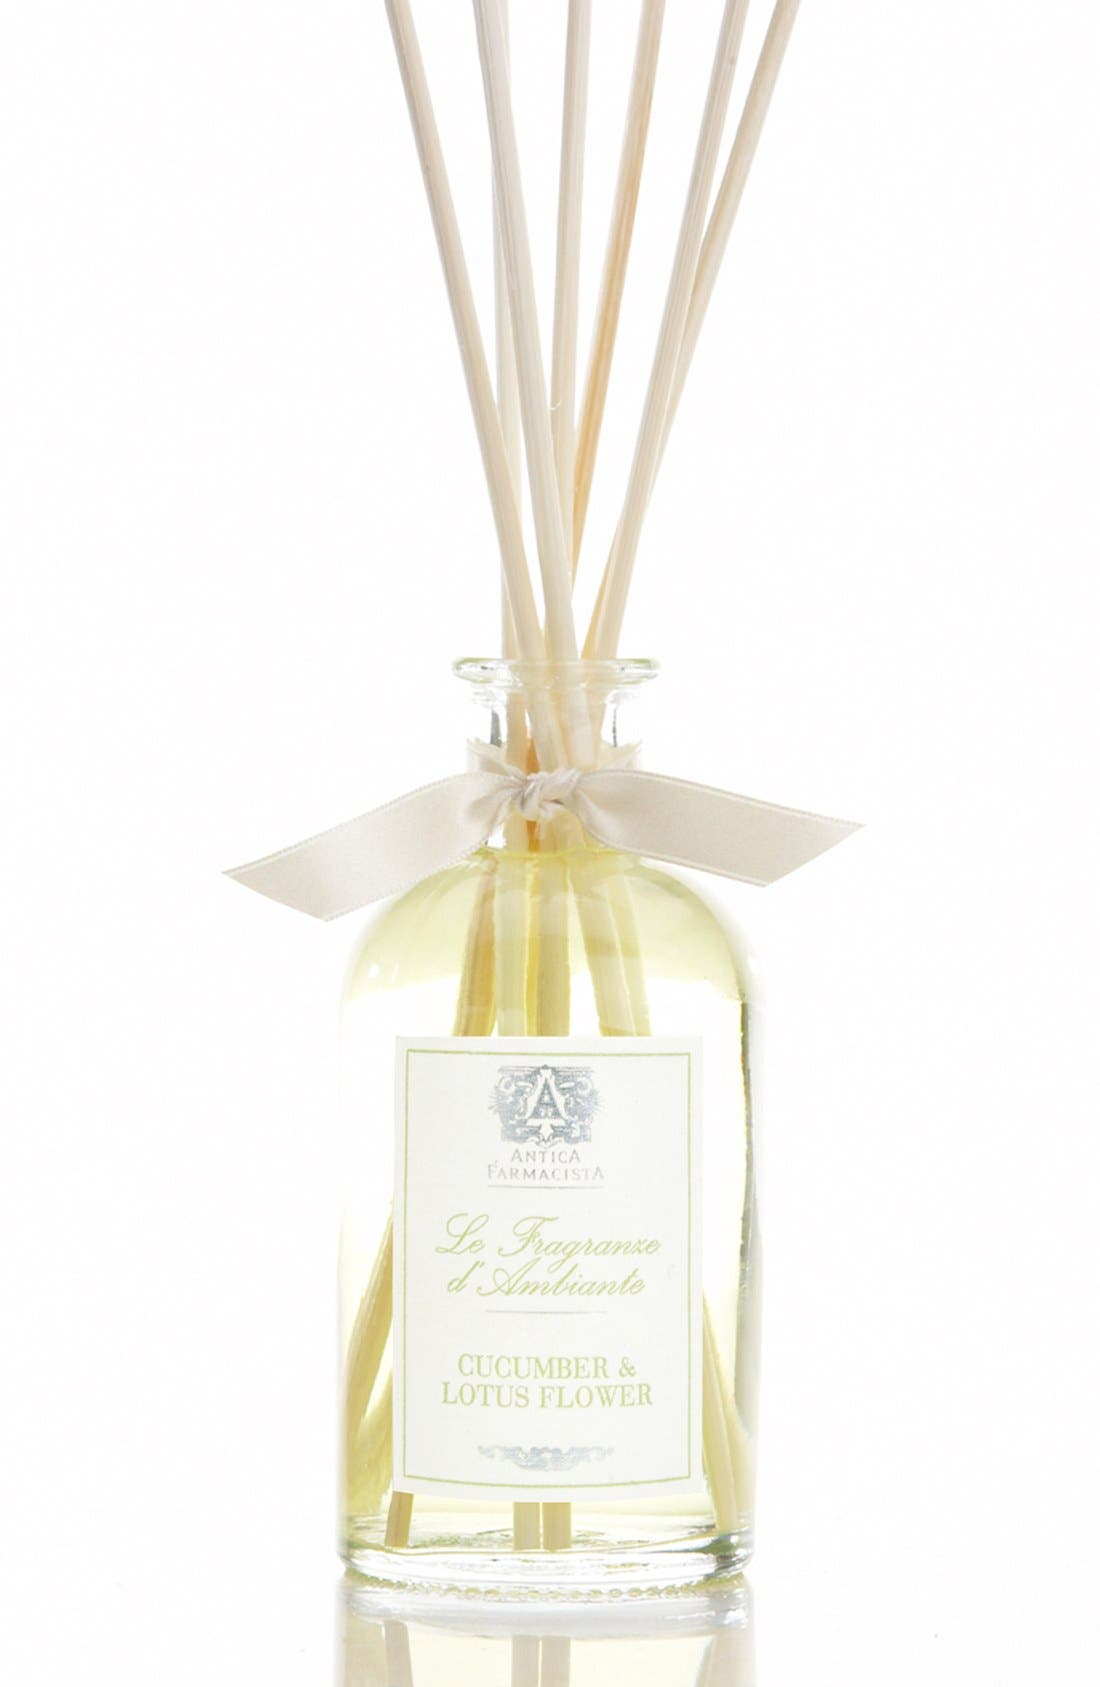 Cucumber & Lotus Flower Home Ambiance Perfume,                         Main,                         color, NO COLOR